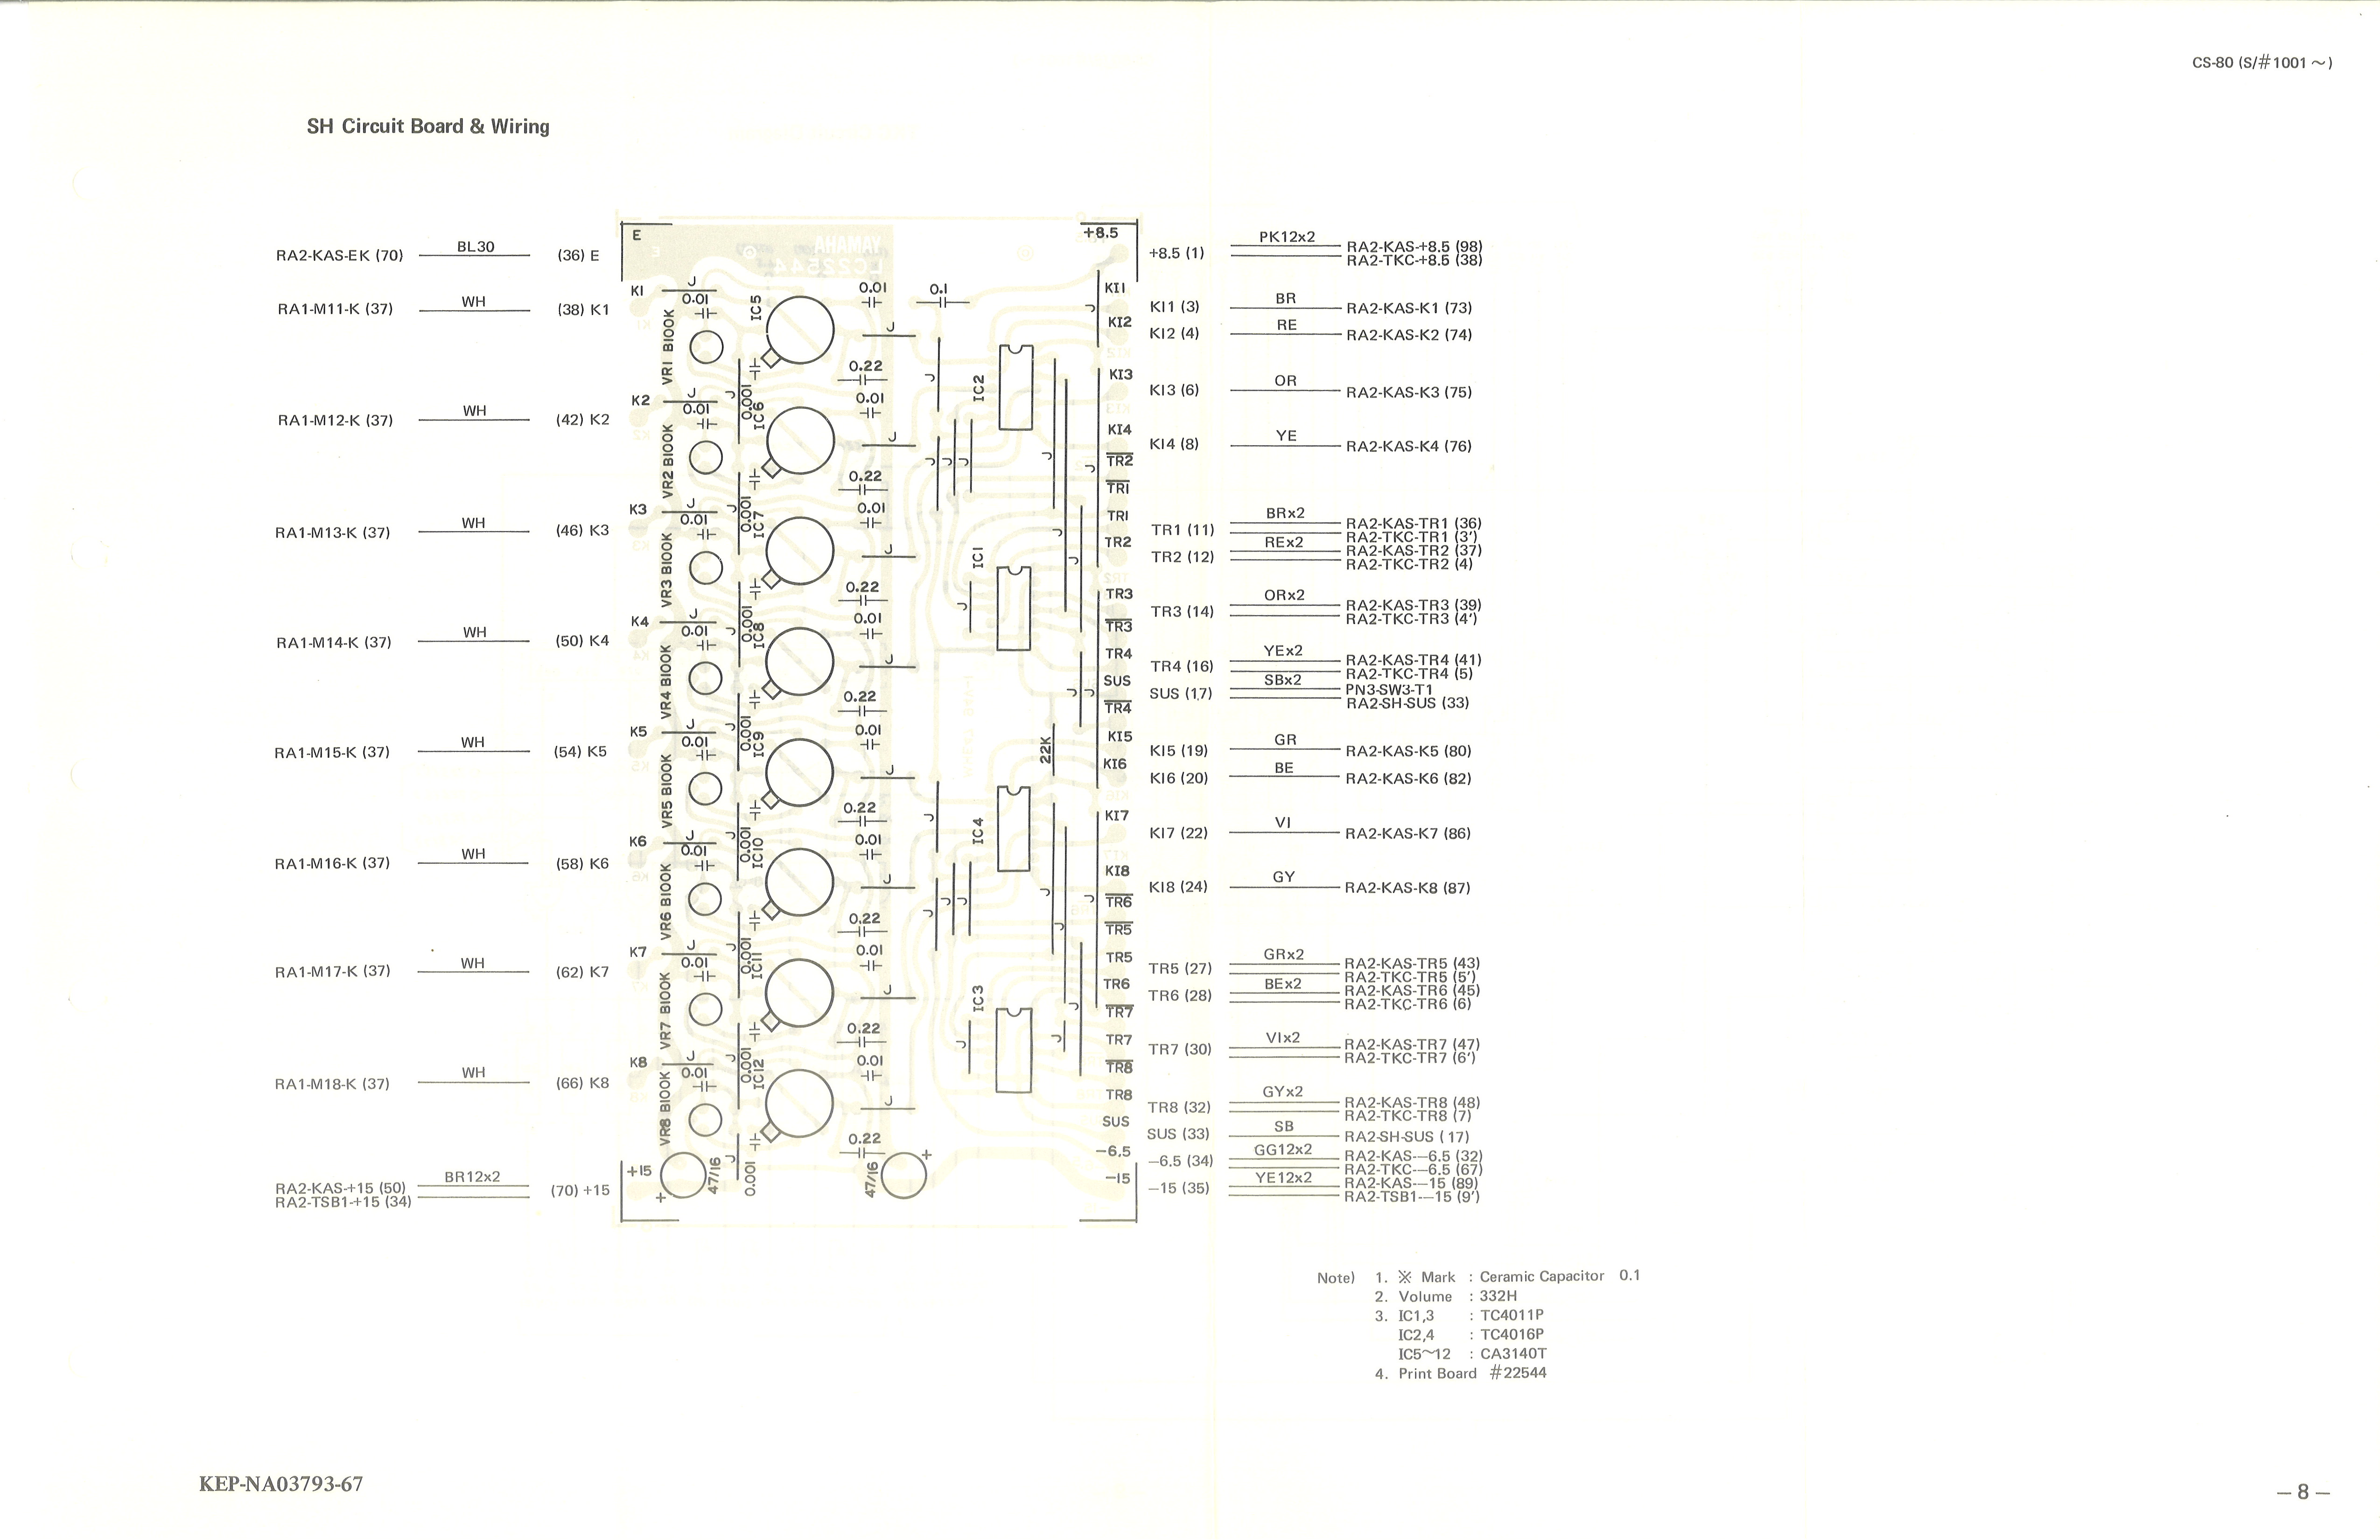 Wiring Diagram  modore Vs together with 30li0 Replacing Wethertron Baystat 239 Thermostat Honeywell additionally Honeywell Digital Thermostat Pro 4000 Wiring Diagram also Bobcat Alternator Wiring Diagram together with 434695 Help Wiring Honeywell T874c Rth7500. on honeywell rth7500 thermostat wiring diagram